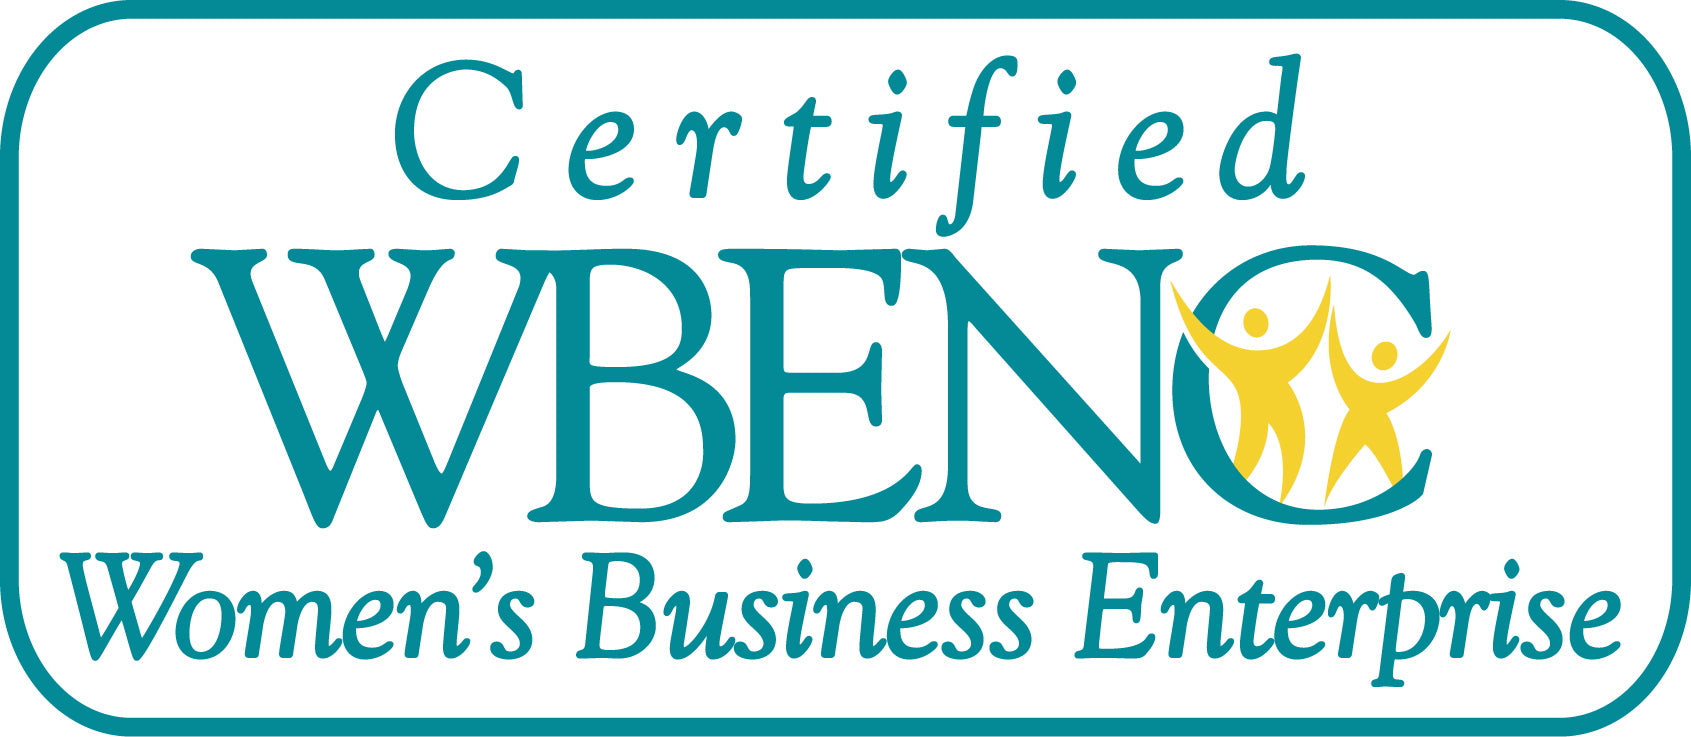 Exciting News!  Check Out Our New Certification as a Women Owned Business!